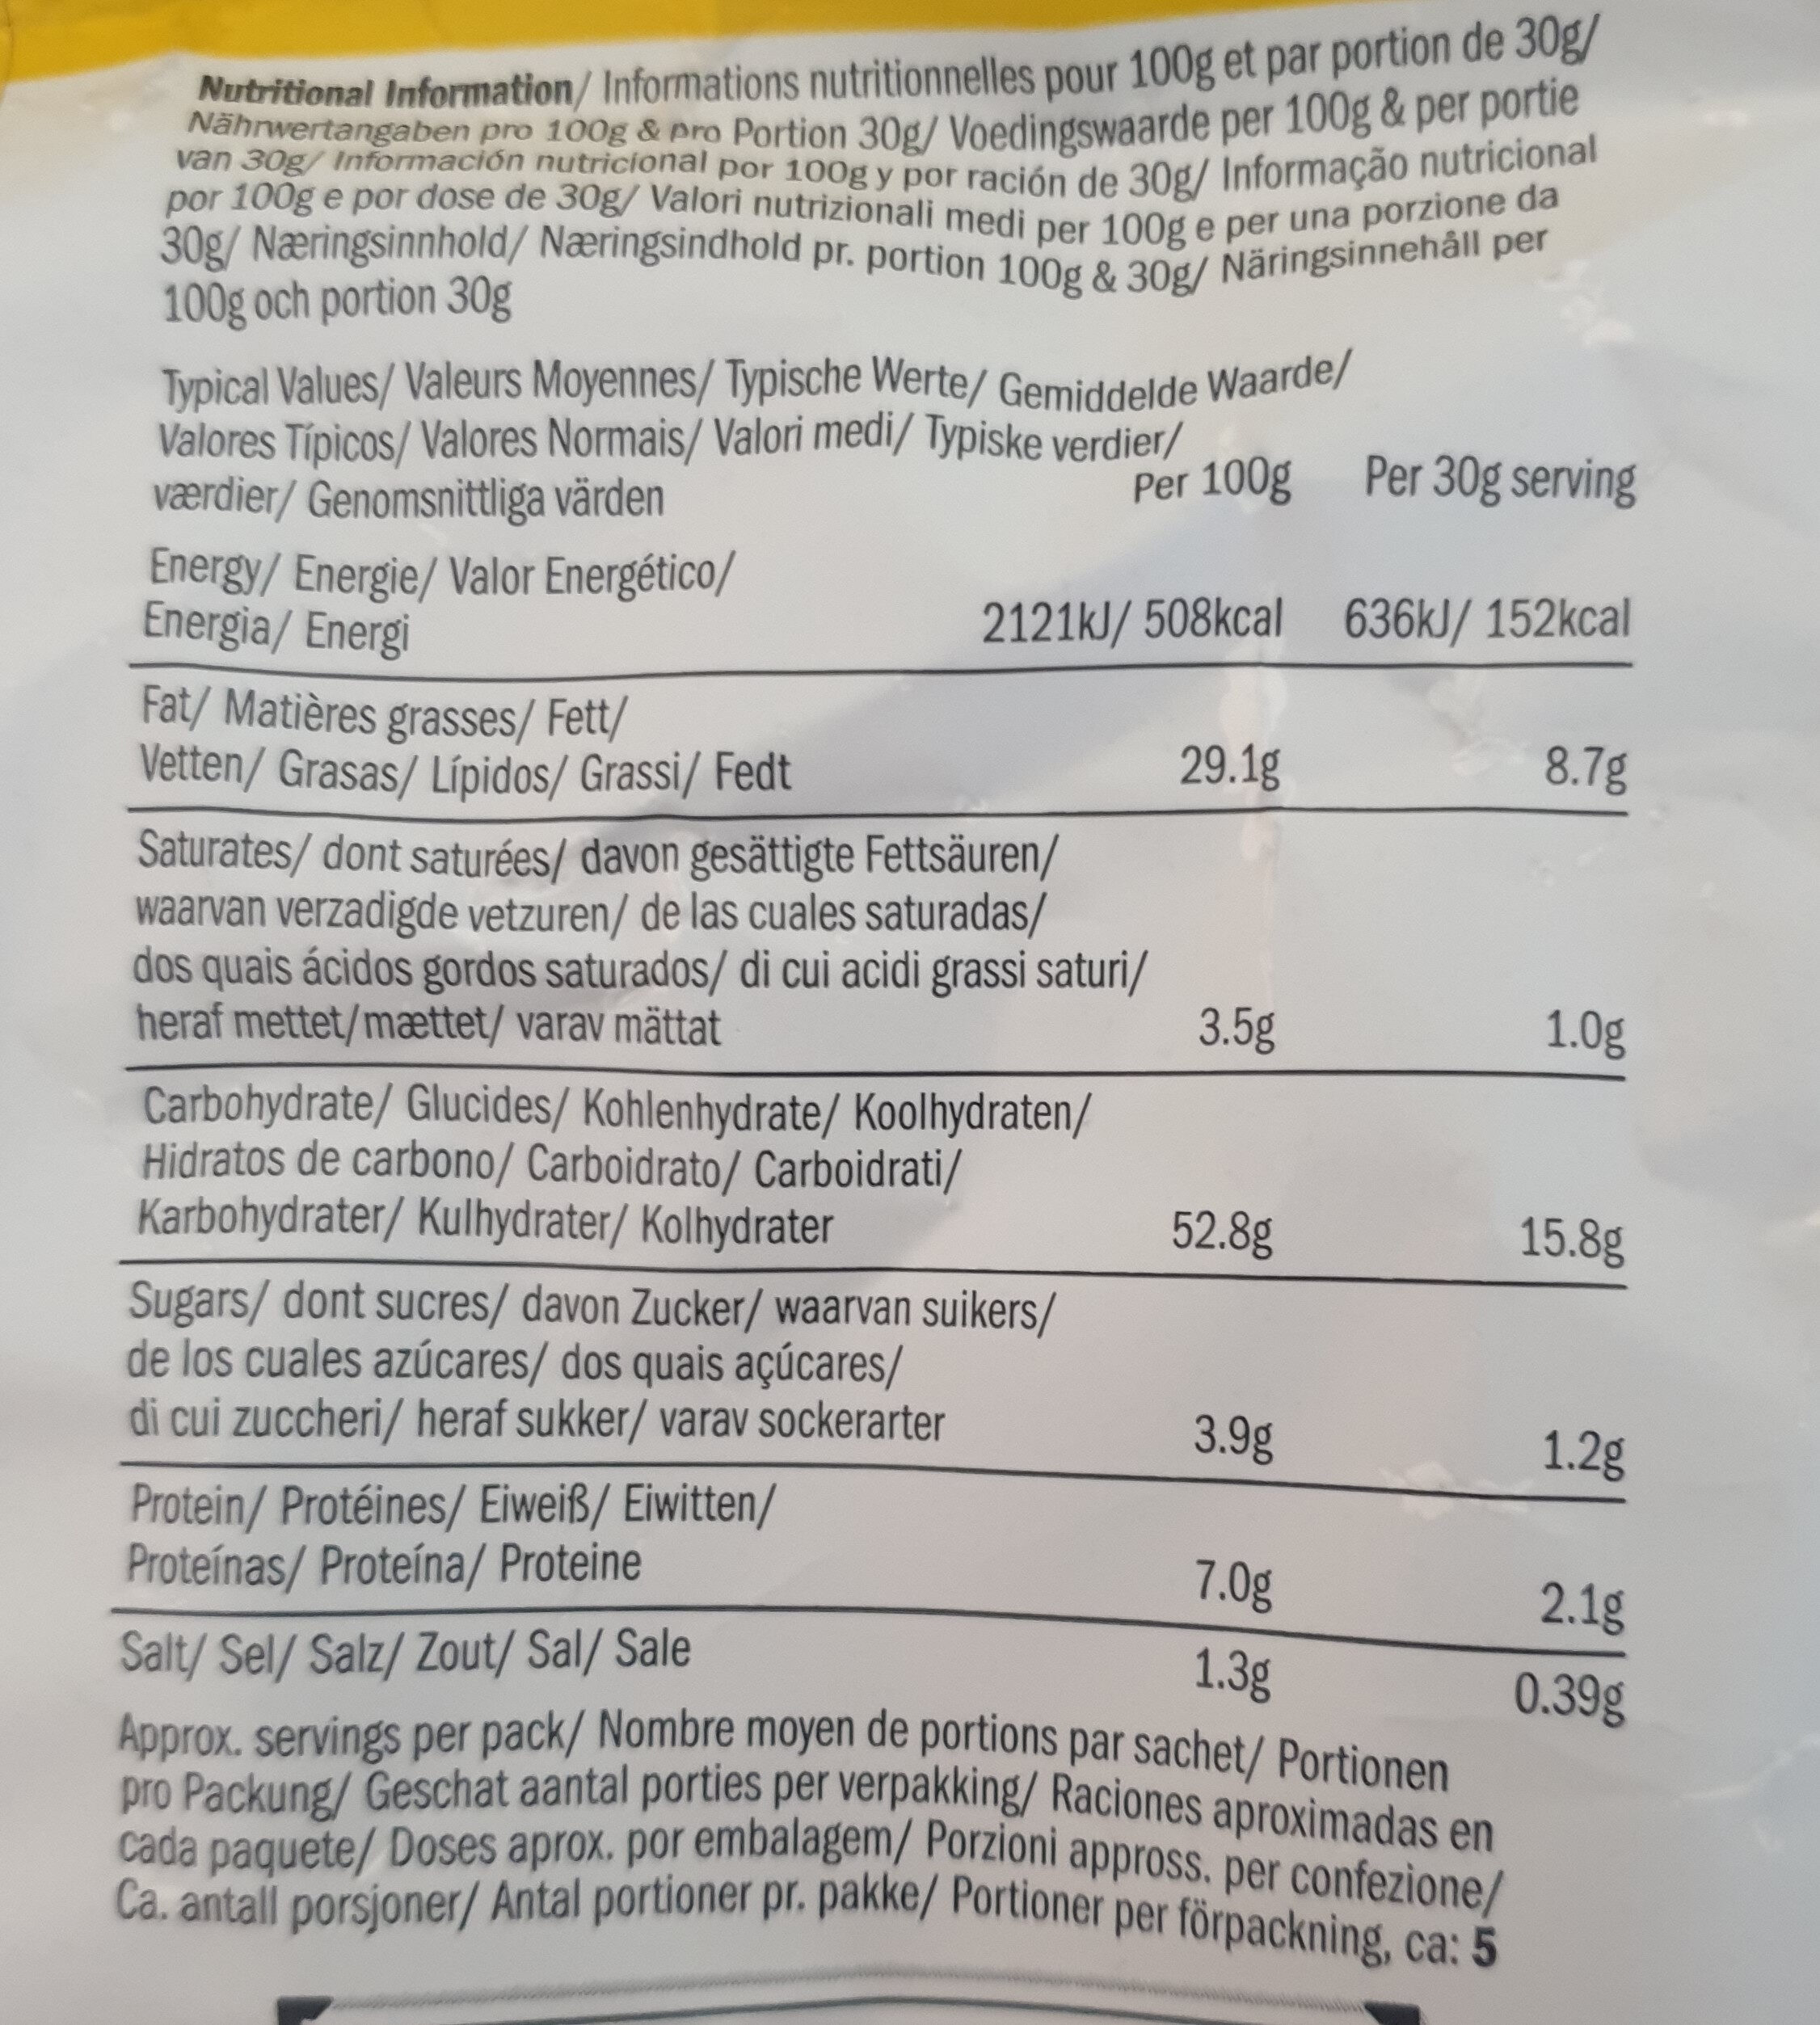 Hand-Cooked English Crisps Mature Cheddar & Chive - Nutrition facts - en